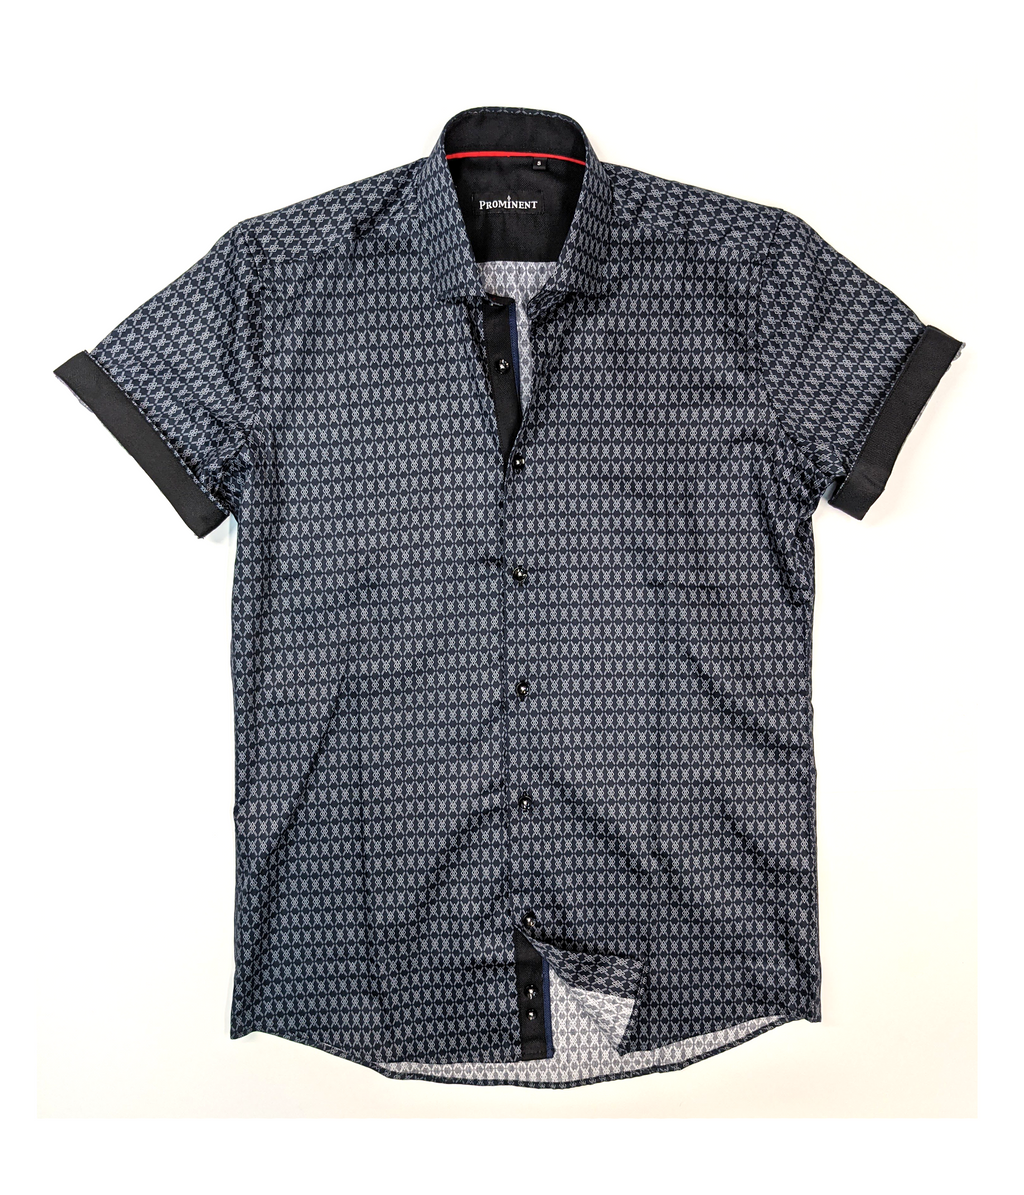 Men's Diamond Pattern Short Sleeve Dress Shirt